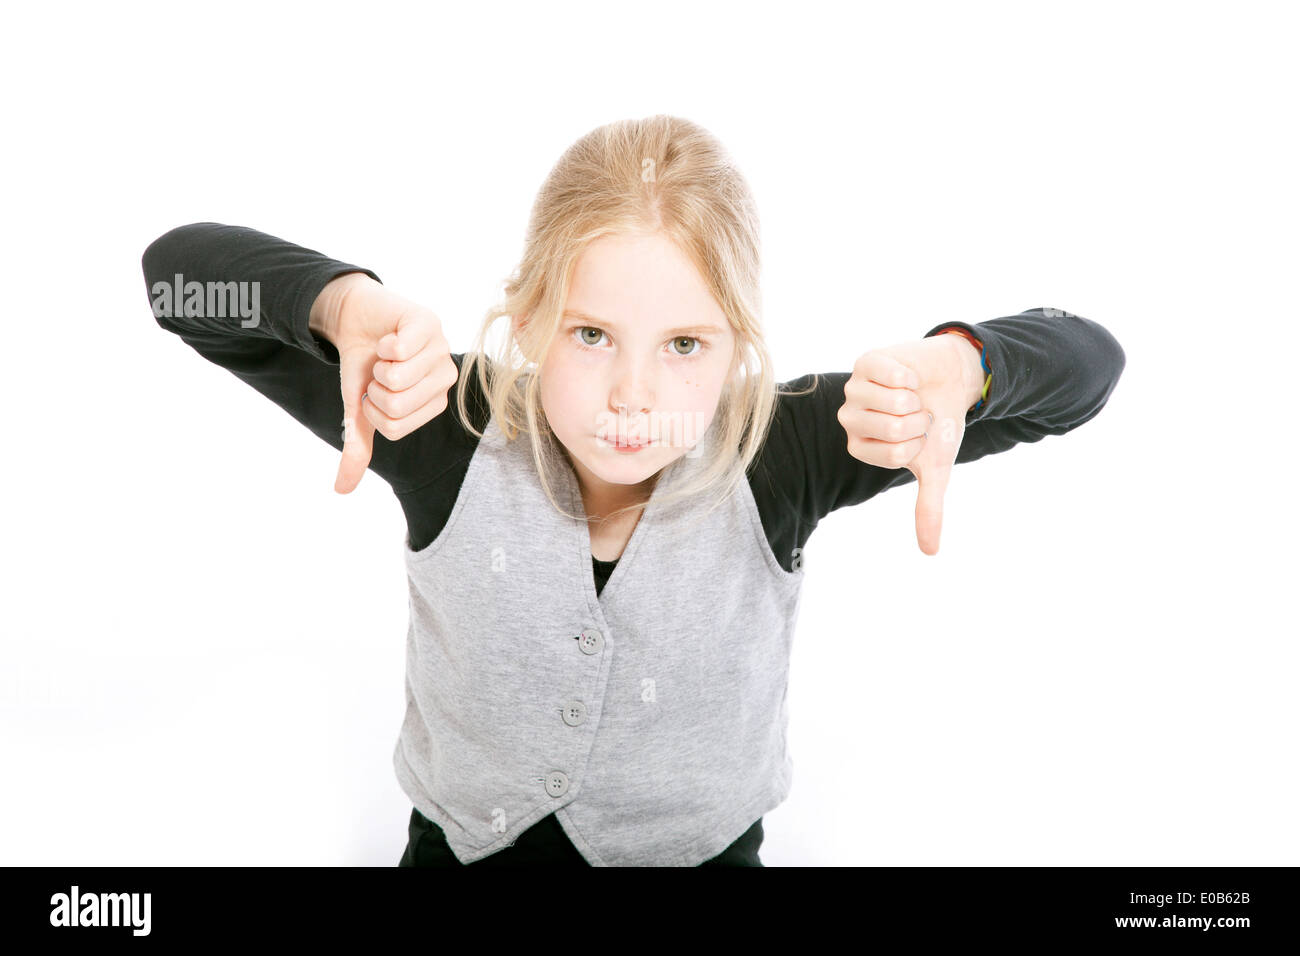 young girl in studio with both thumbs down against white background - Stock Image